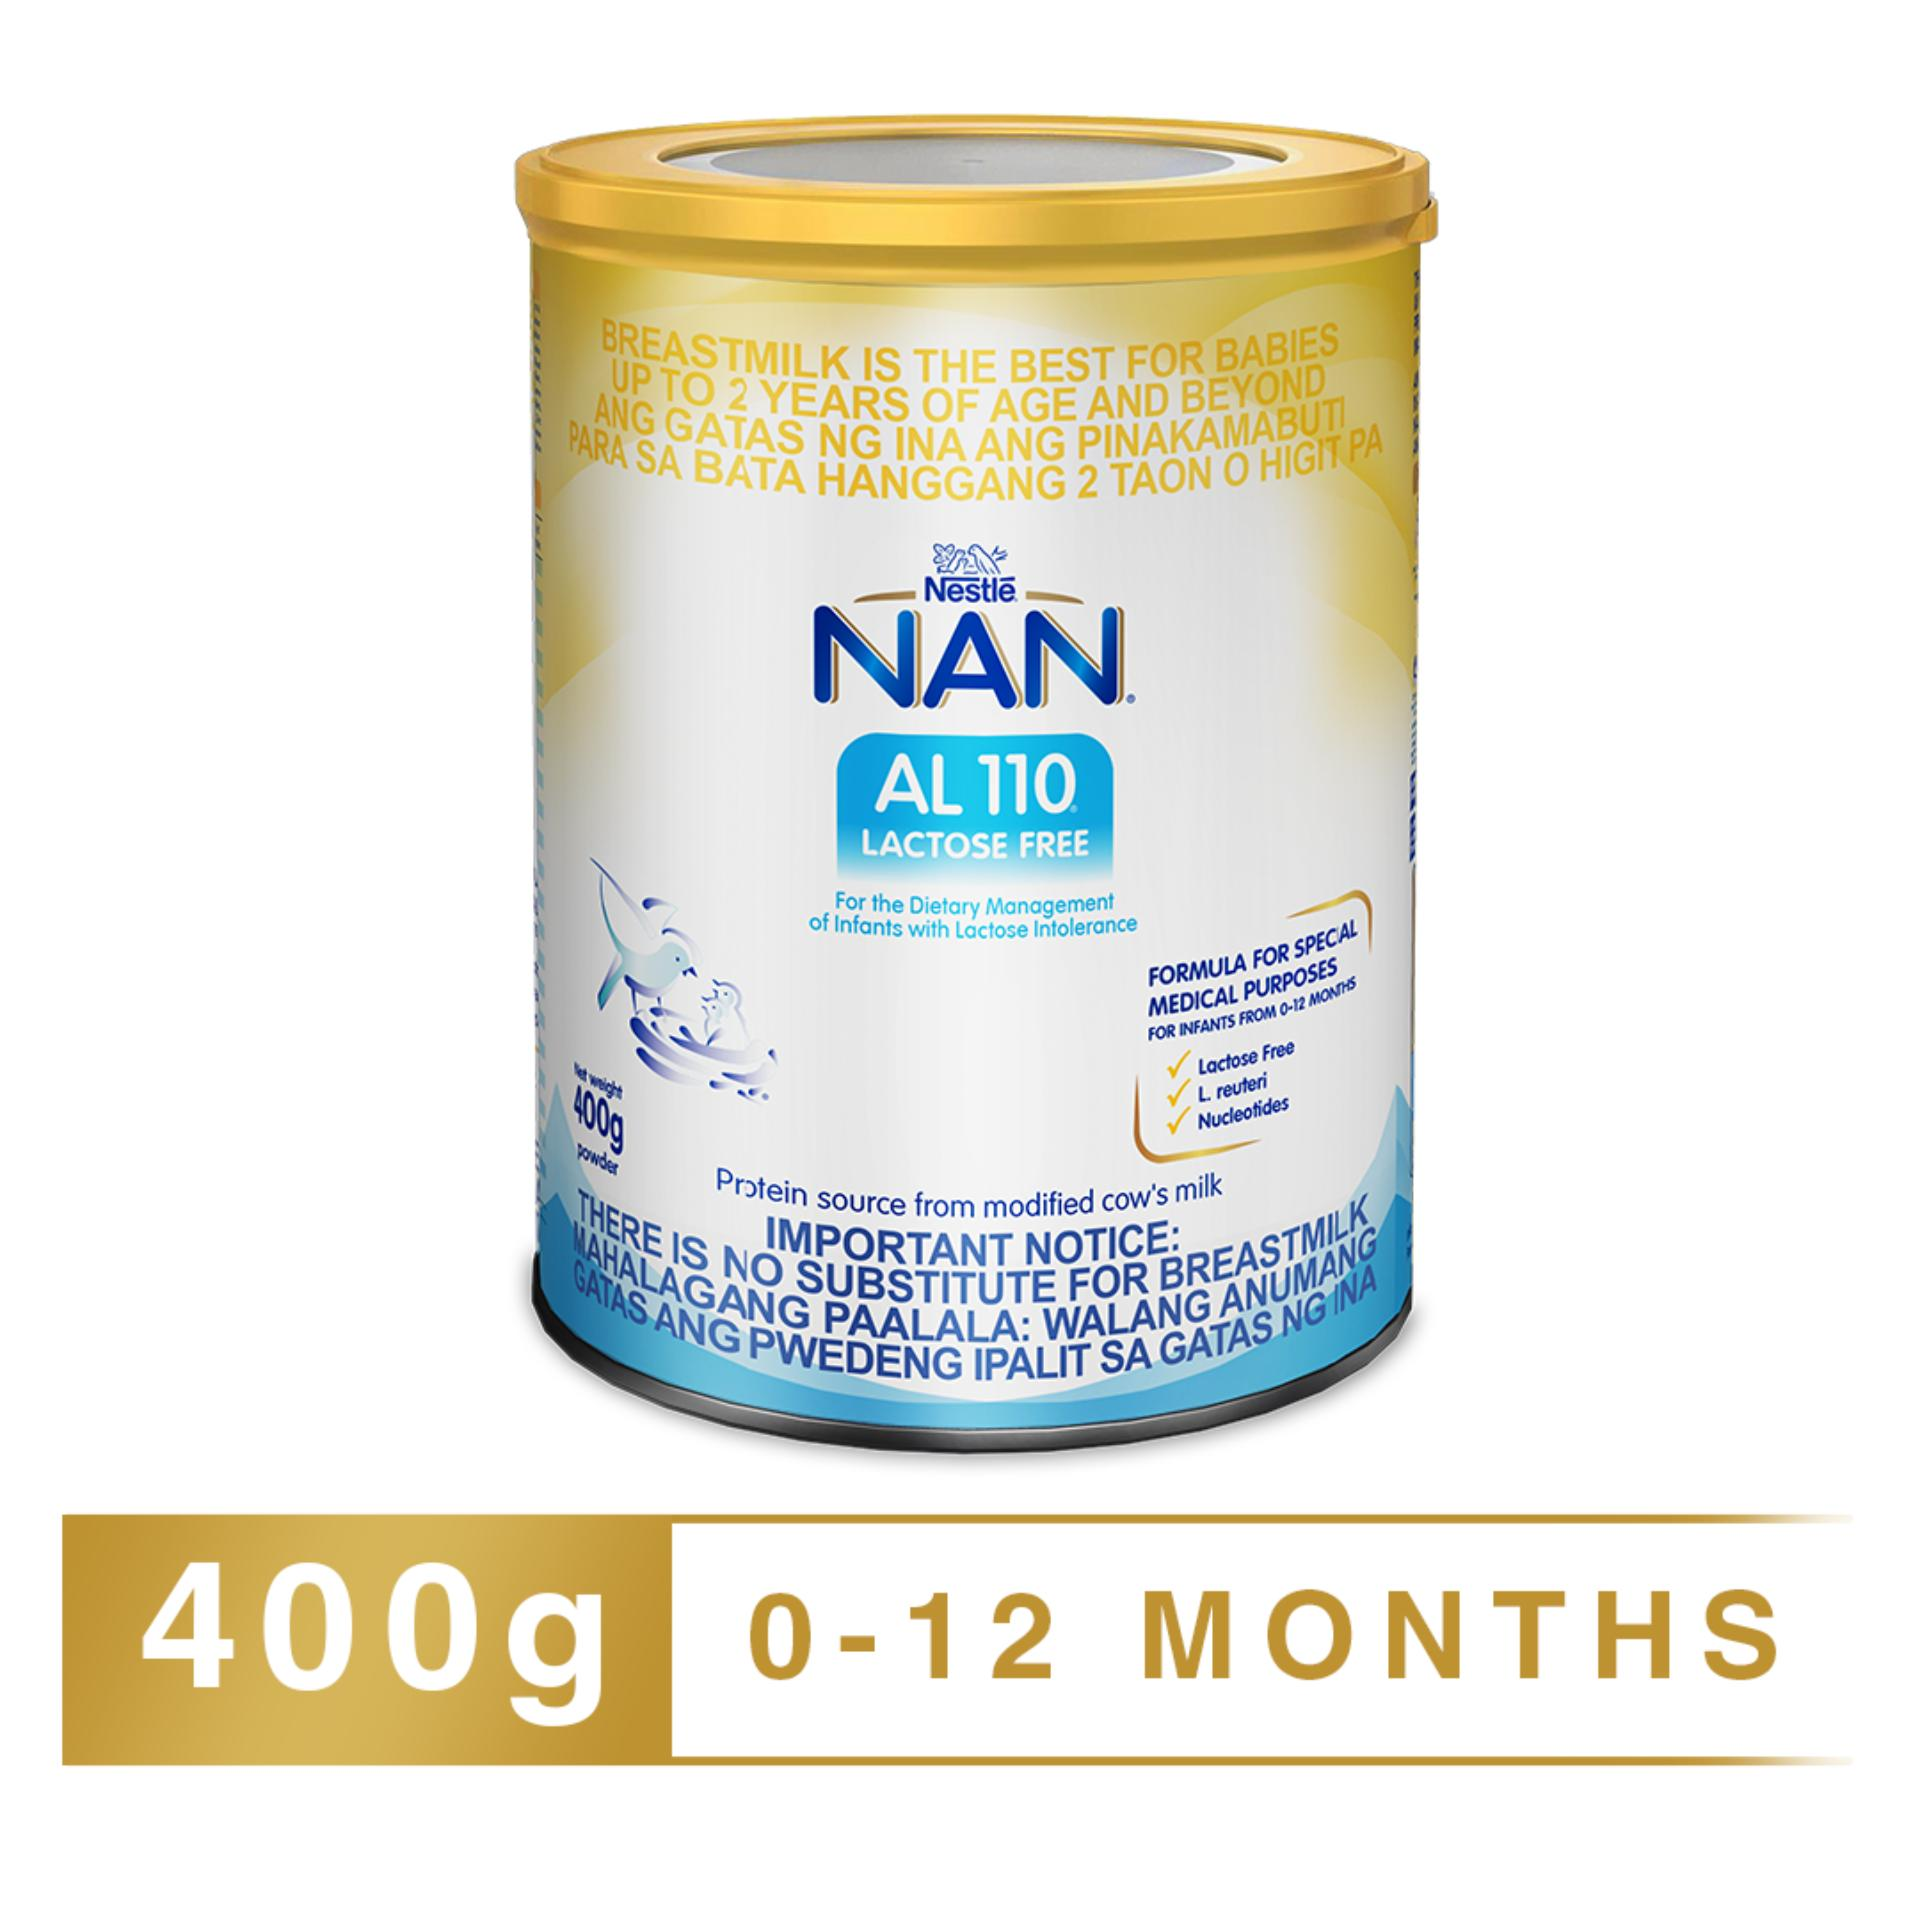 Infant Formula For Sale Baby Online Brands Prices S 26 Procal Gold Can 400g Nestle Nan Al110 Lactose Free Special Medical Purposes 0